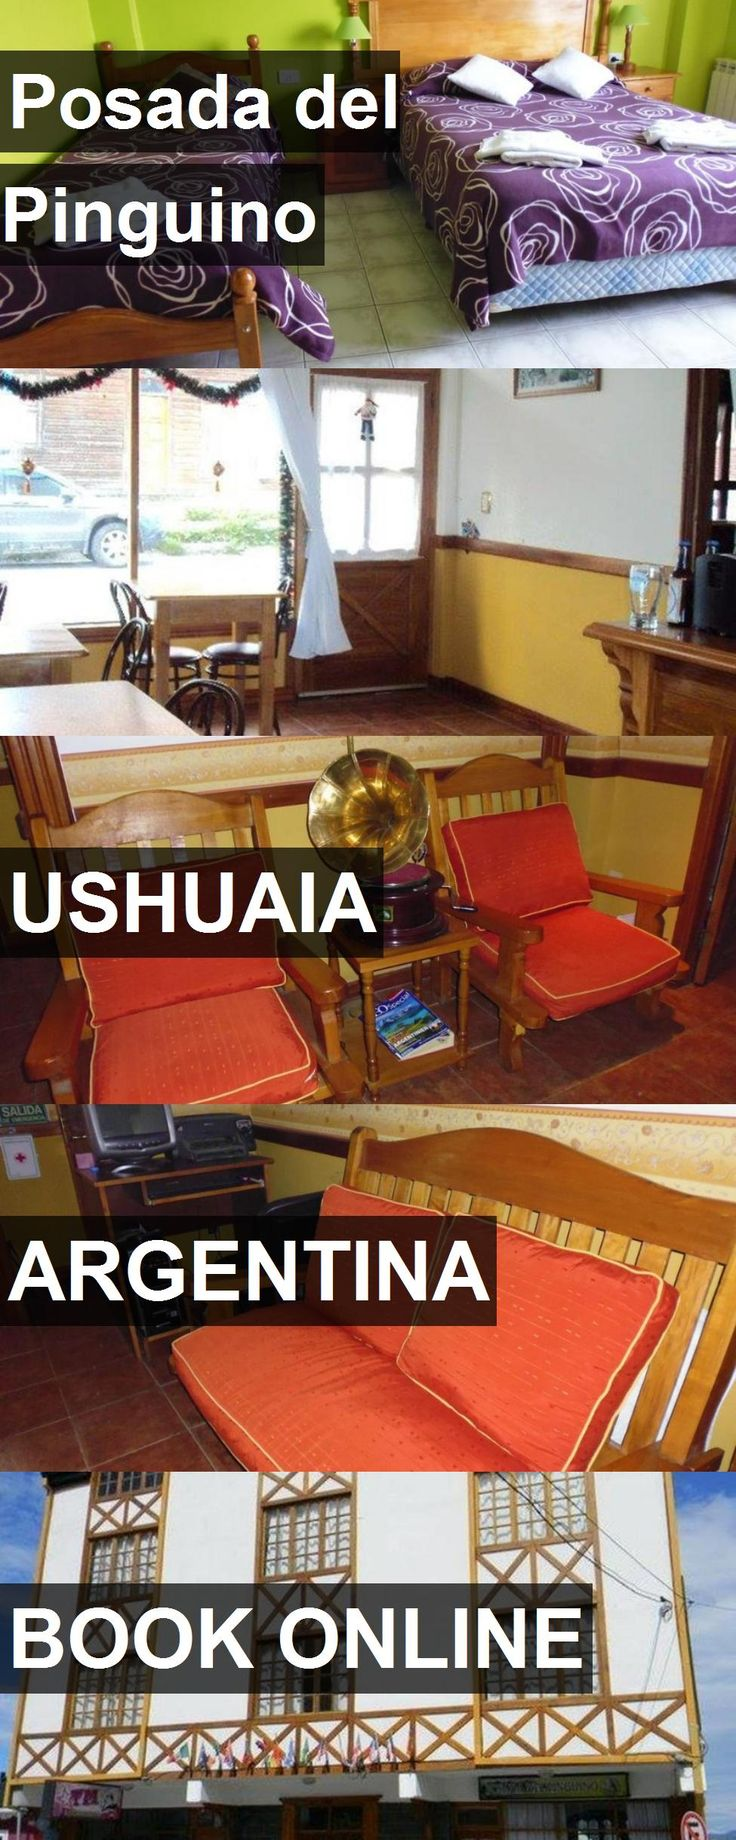 Hotel Posada del Pinguino in Ushuaia, Argentina. For more information, photos, reviews and best prices please follow the link. #Argentina #Ushuaia #hotel #travel #vacation